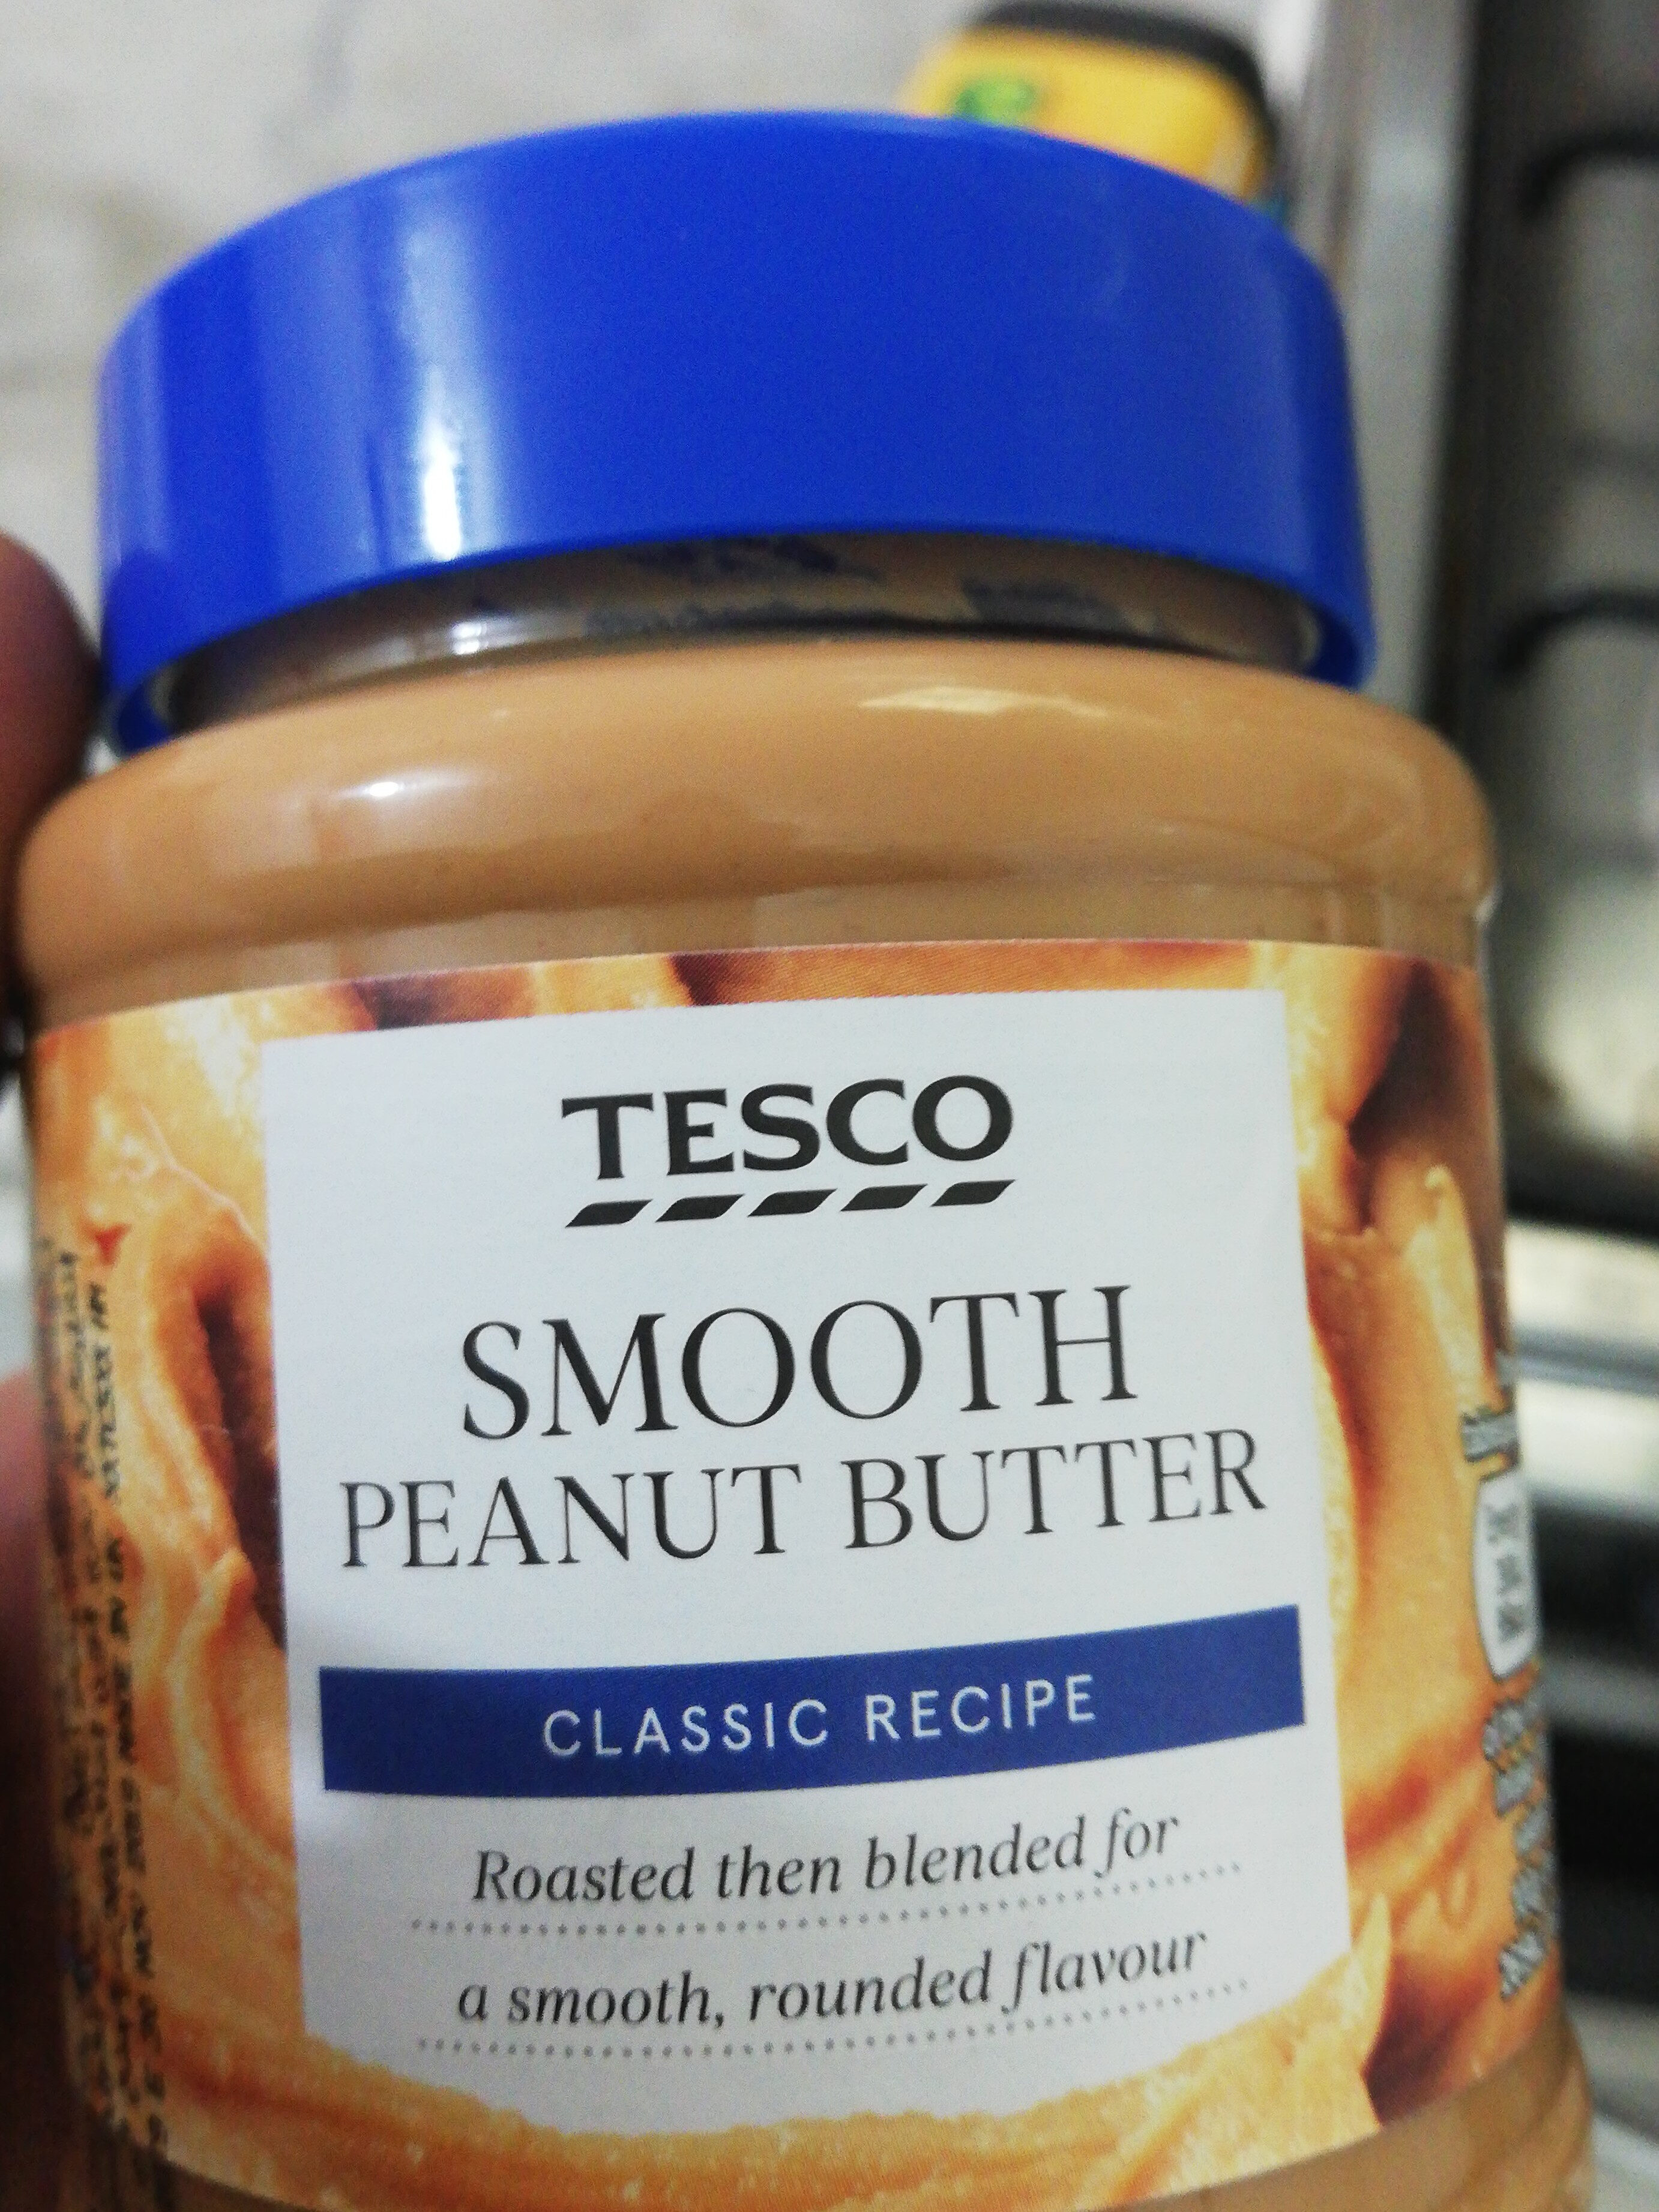 Tesco Smooth Peanut Butter 340G - Product